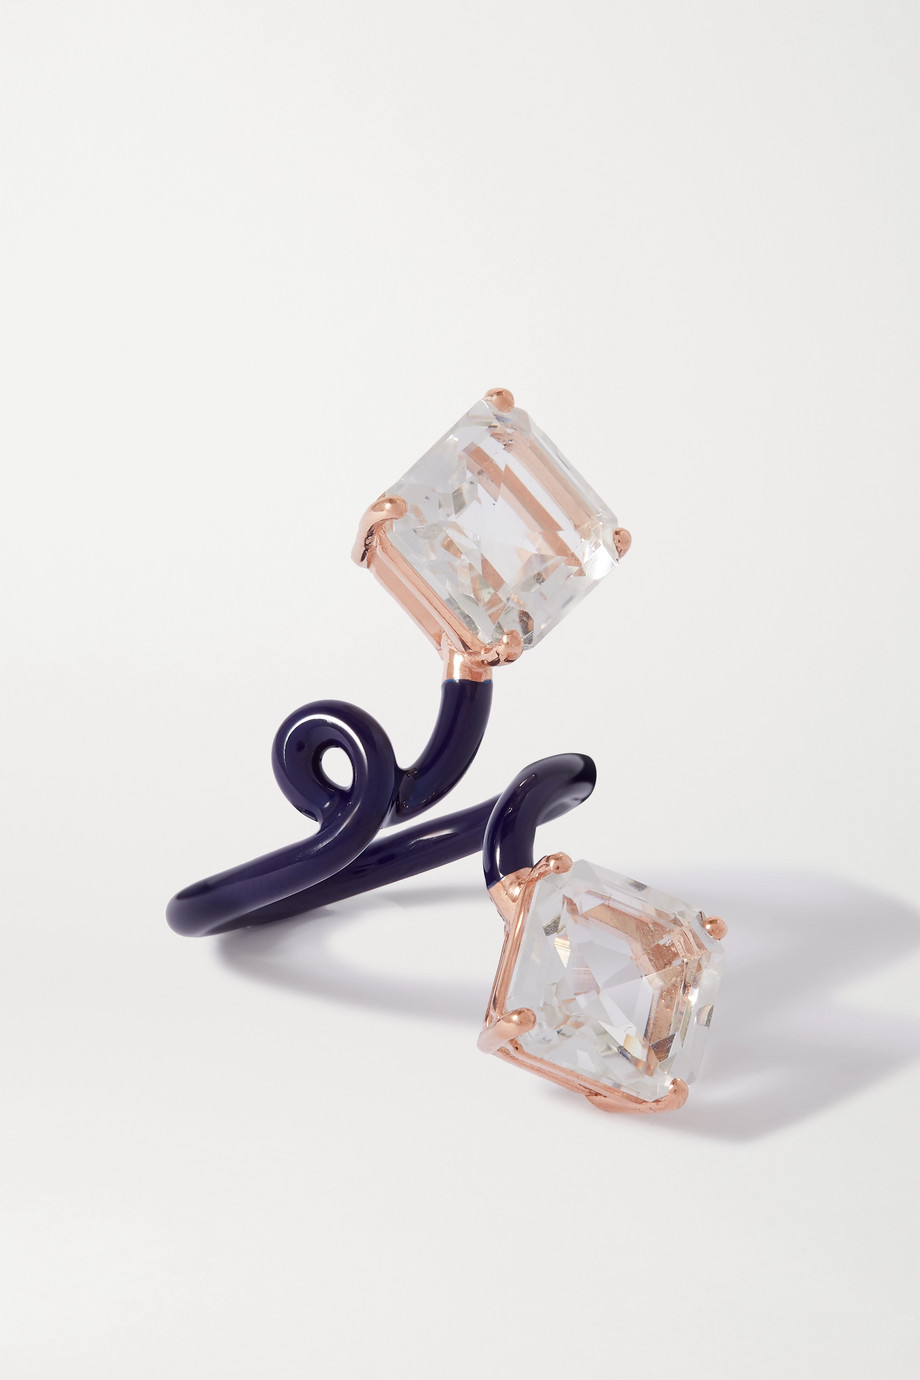 BEA BONGIASCA Double Octagon Tendril 9-karat rose gold, enamel and rock crystal ring